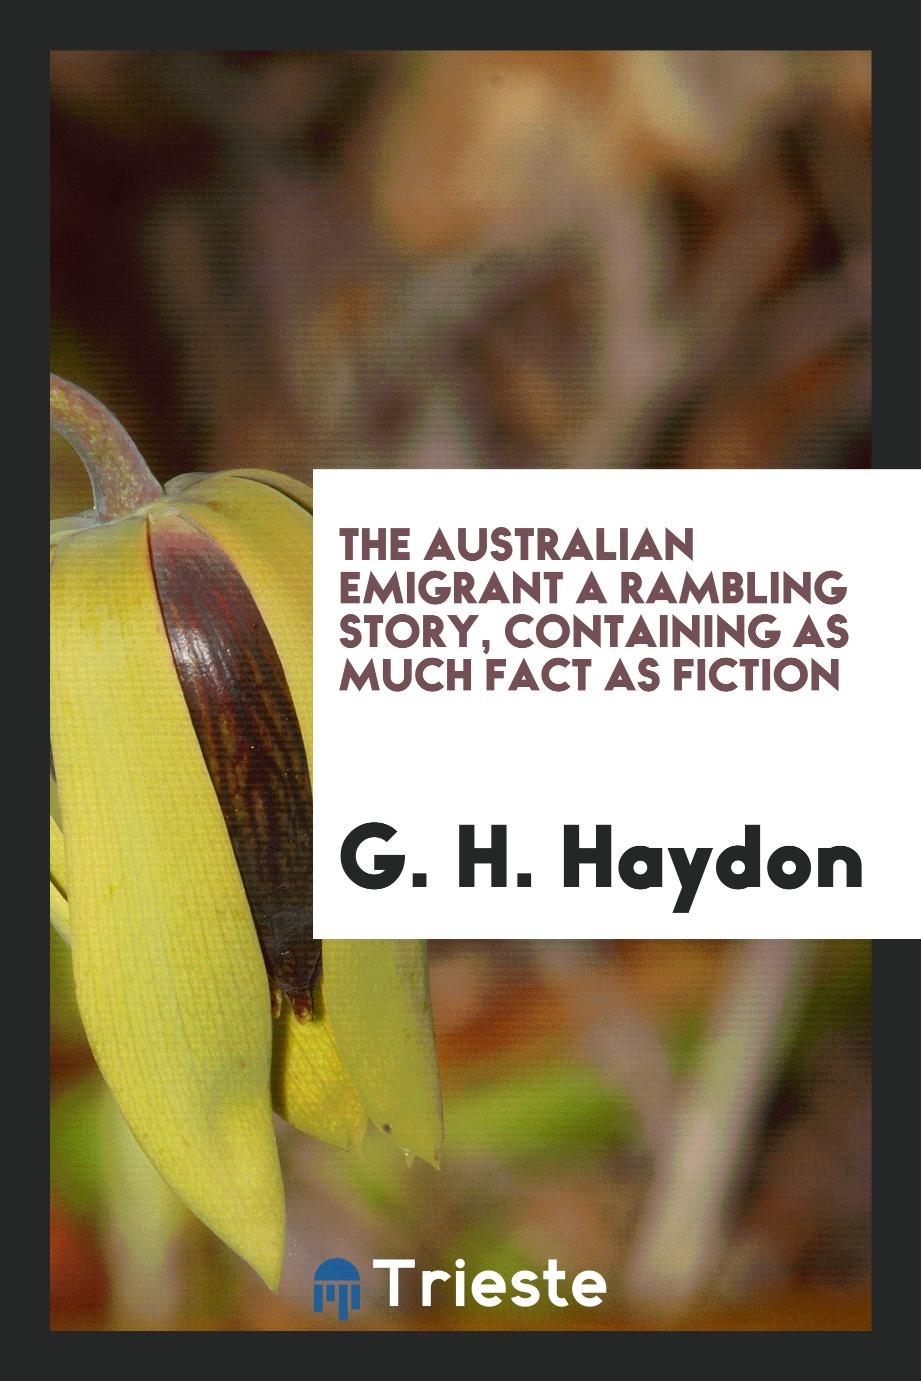 The Australian emigrant a rambling story, containing as much fact as fiction